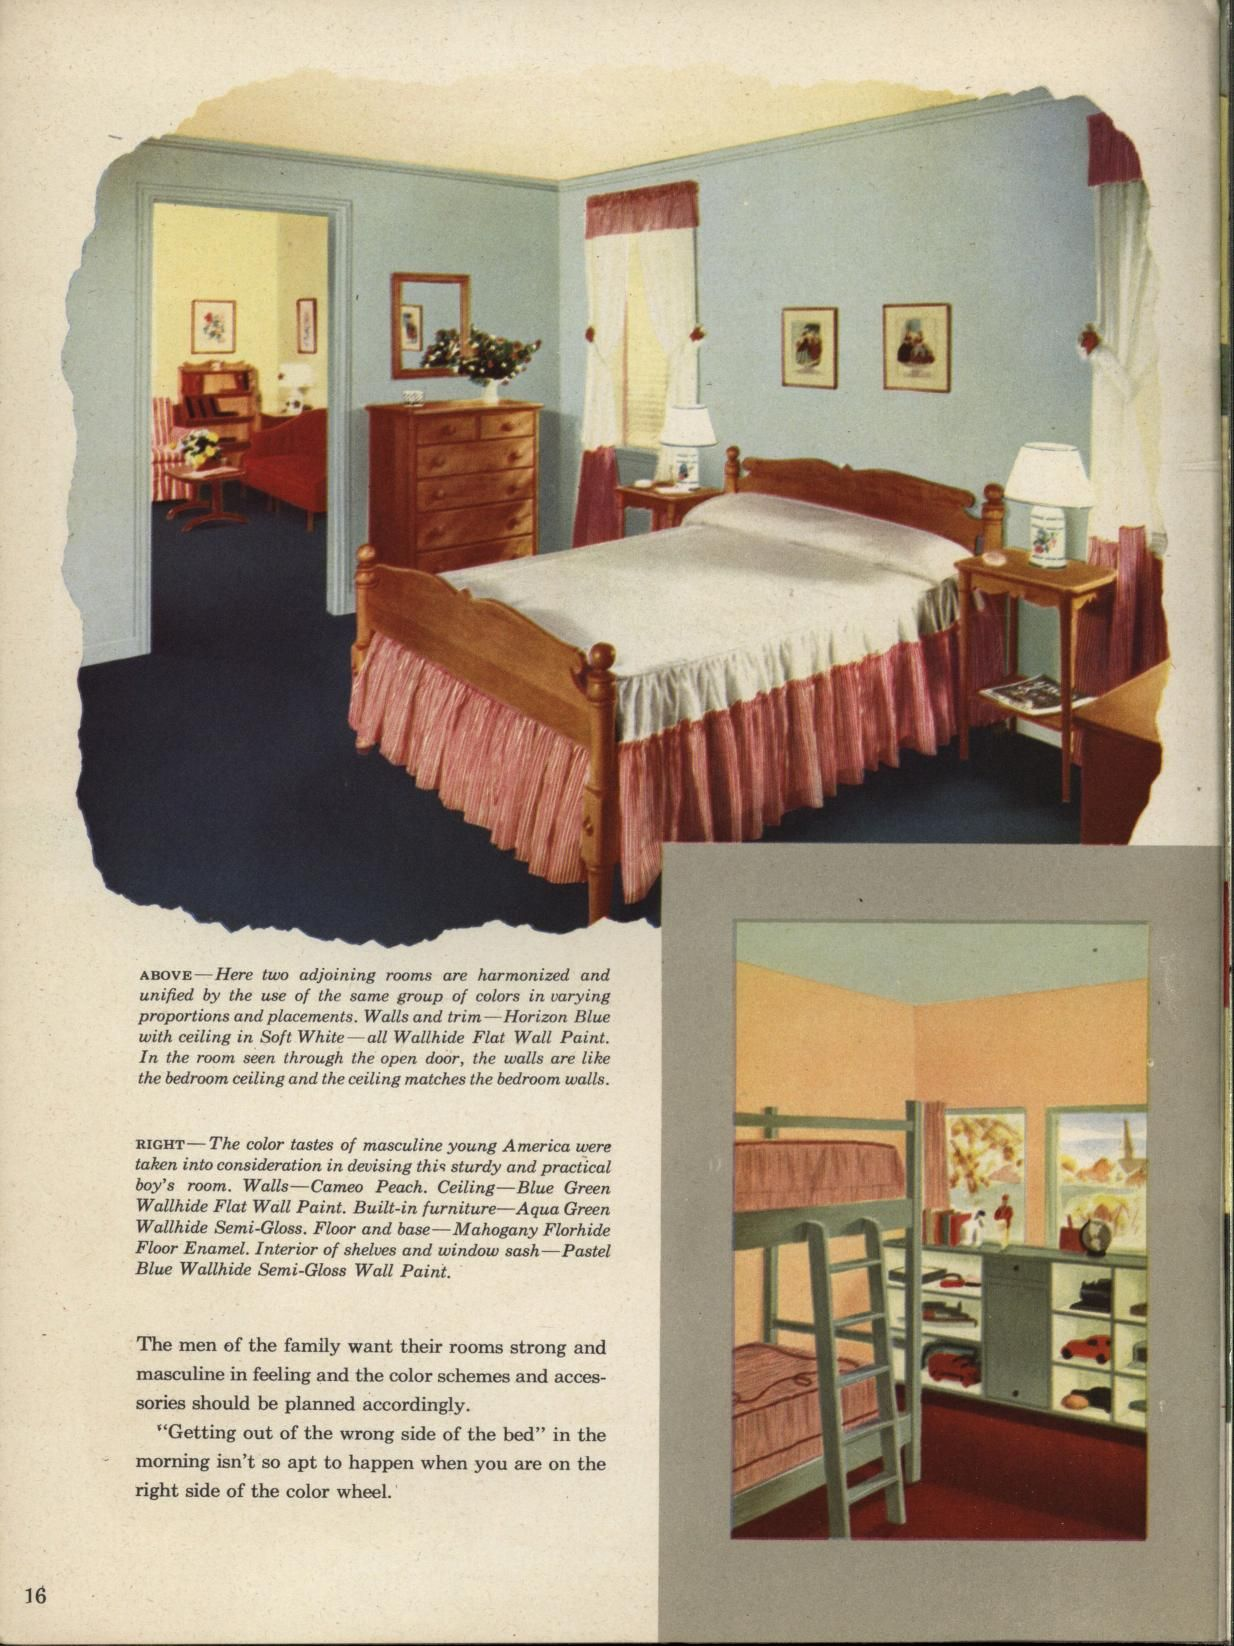 Pittsburgh color dynamics for your home. | vintage furniture and ...